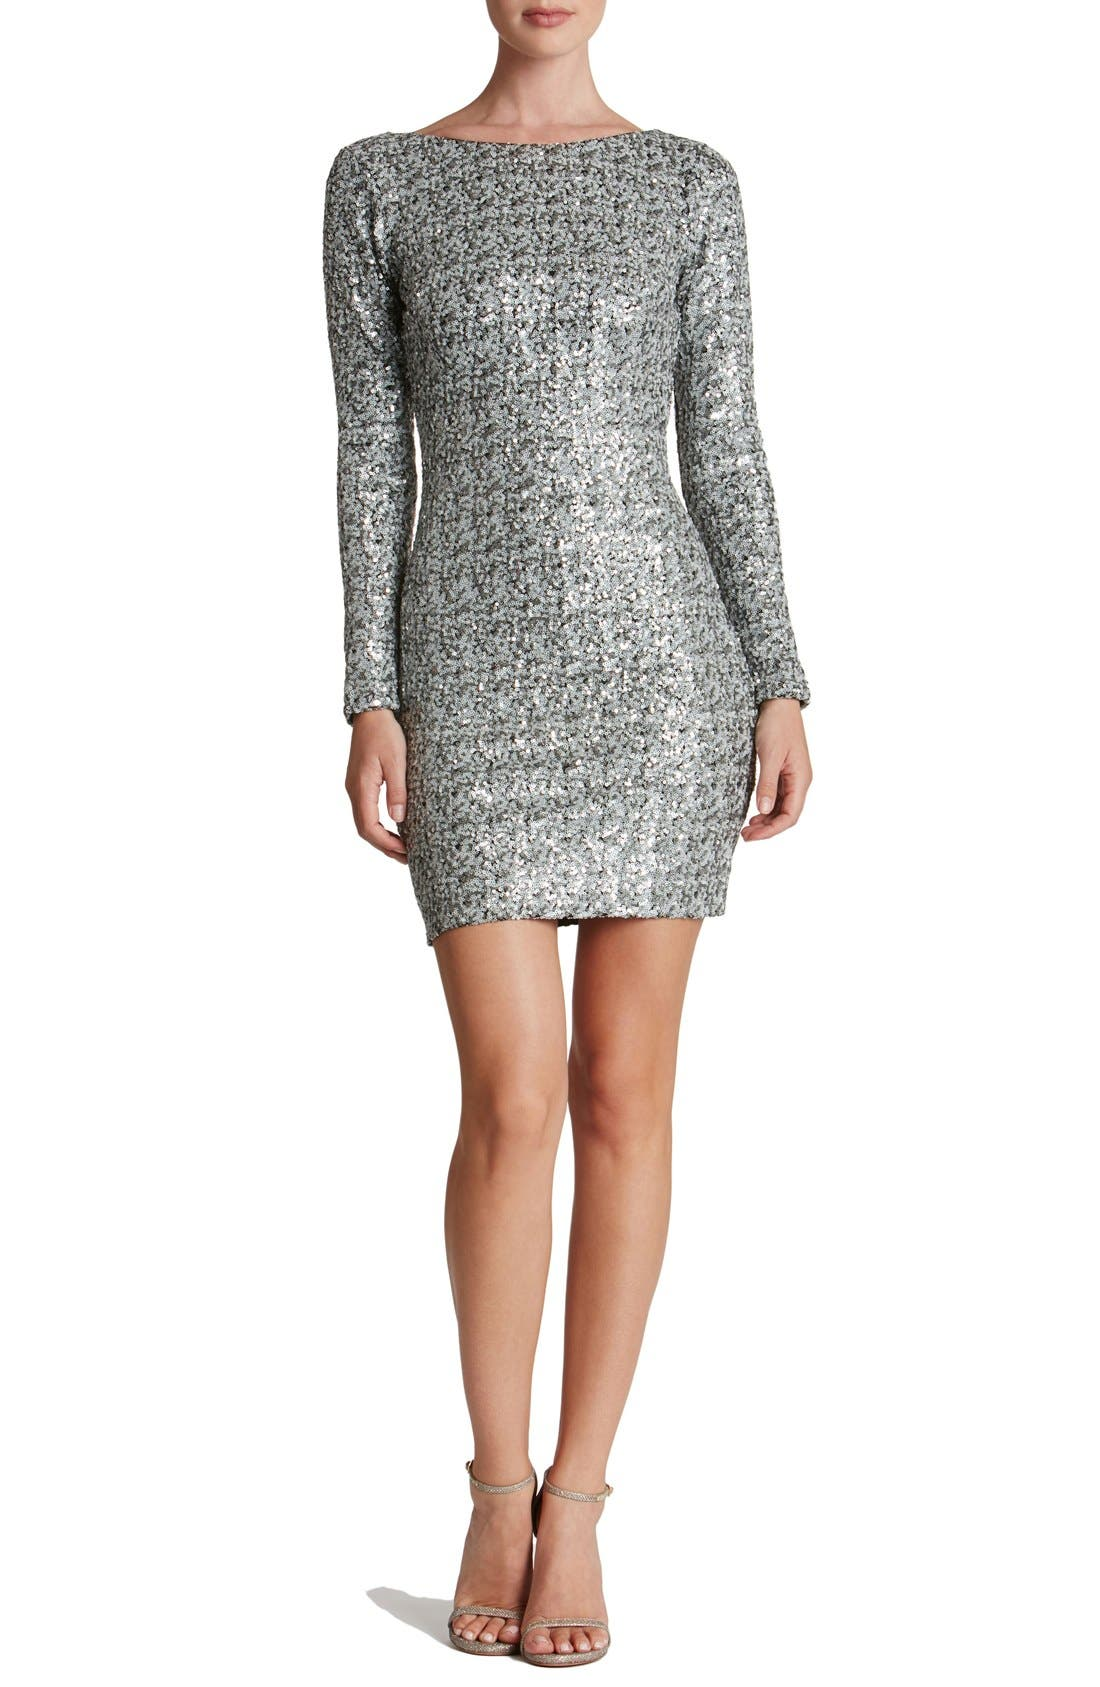 Alternate Image 1 Selected - Dress the Population Lola Body-Con Dress